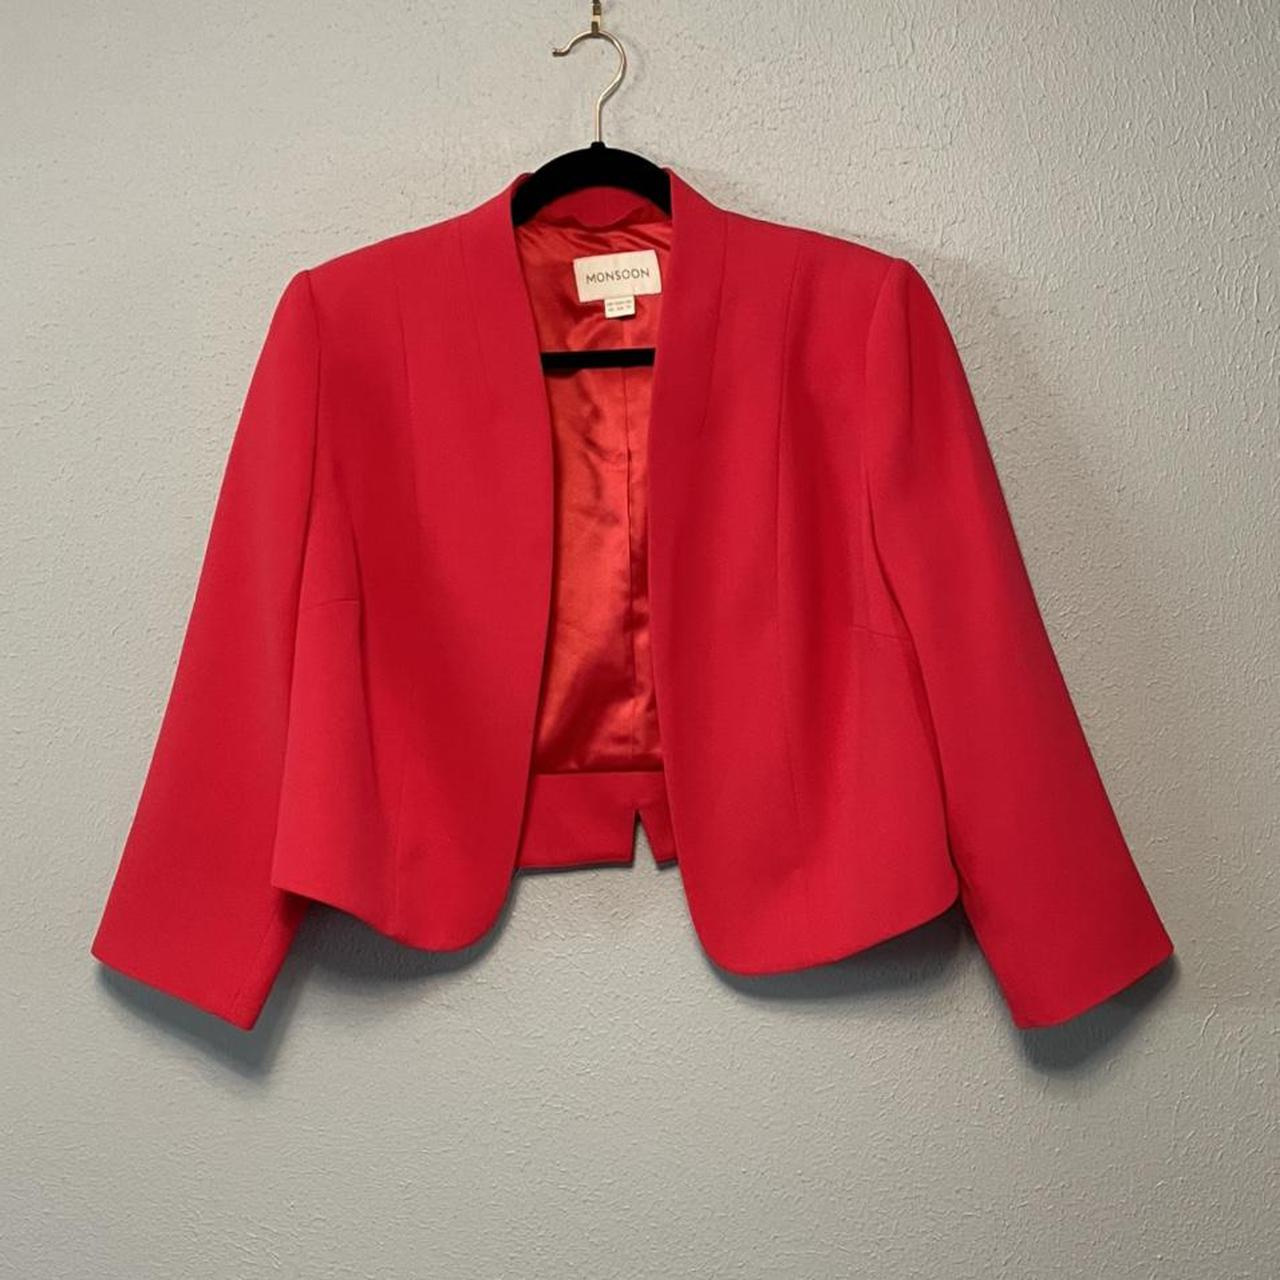 Product Image 1 - Red Blazer  Red Monsoon blazer in